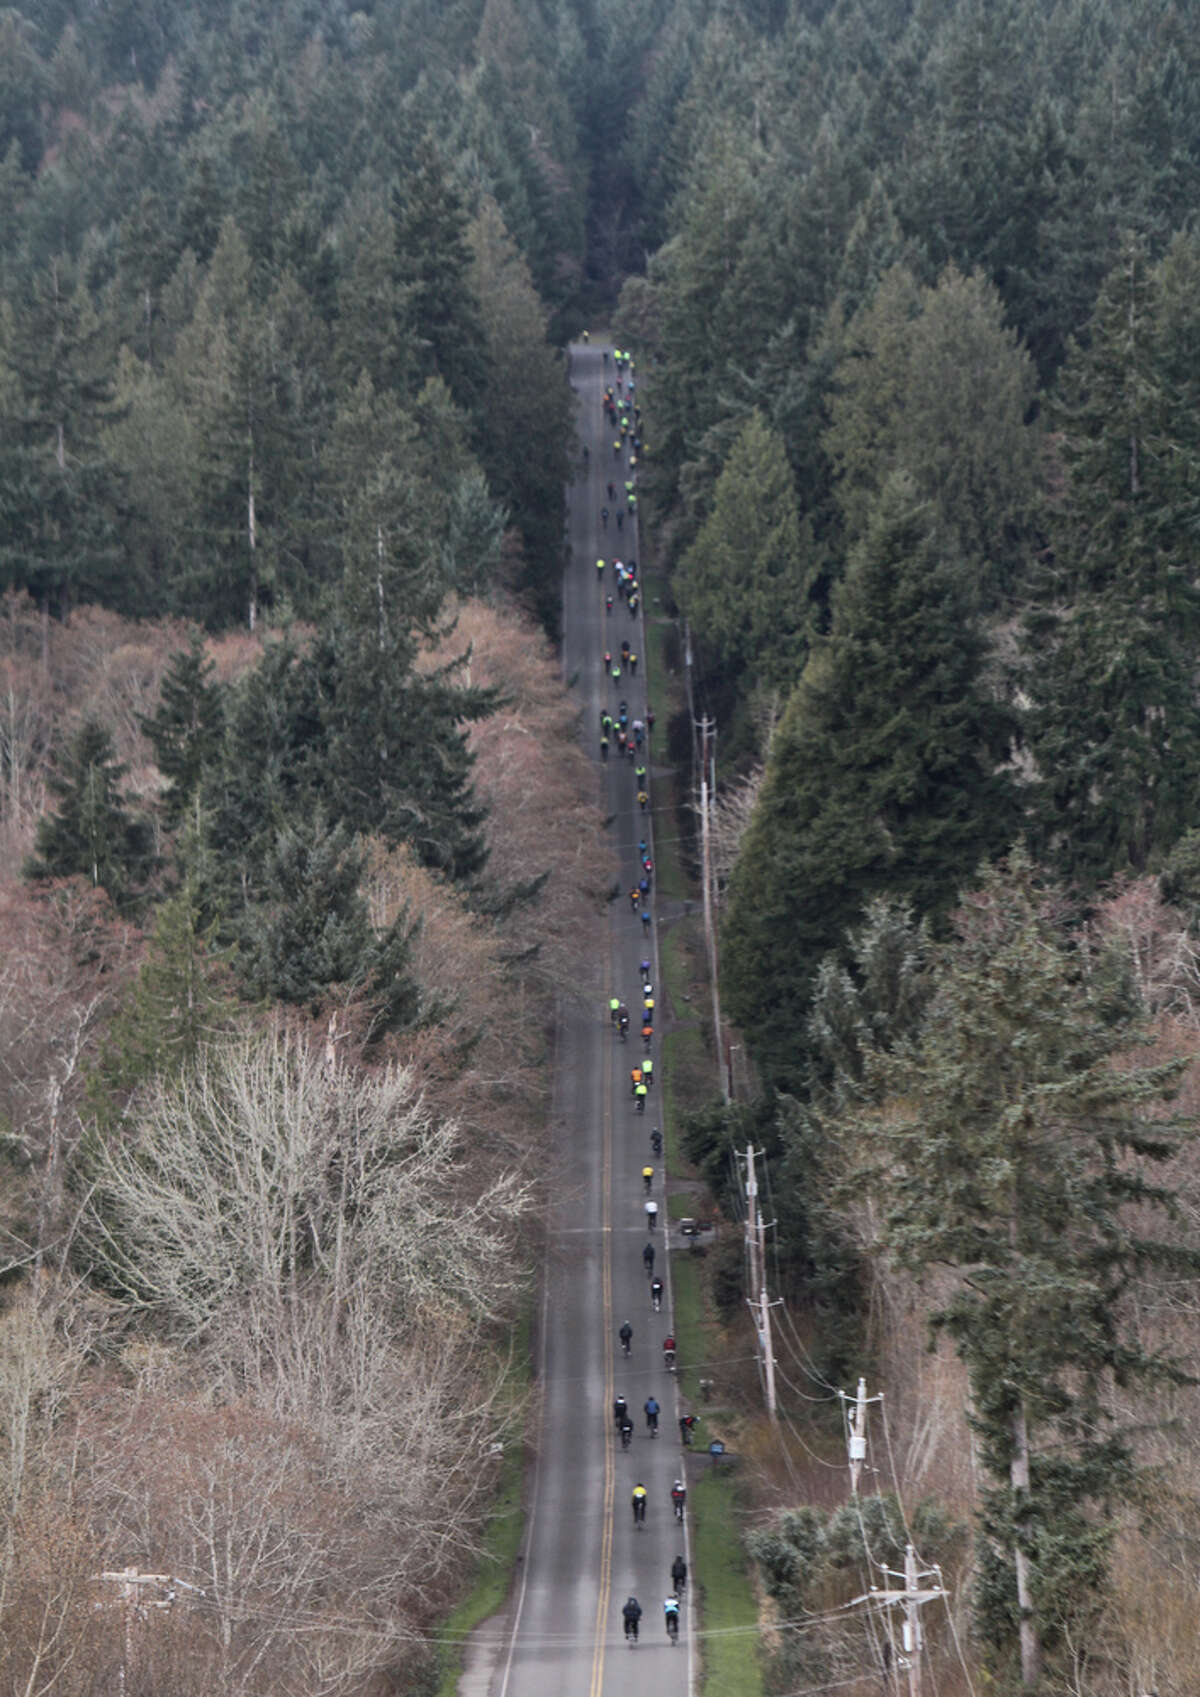 Cyclists climb a massive hill during the Chilly Hilly ride on Bainbridge Island on Sunday, Feb. 26, The Cascade Bicycle Club organizes the ride to encourage cyclists to stay active during the winter months and to support Bainbridge Island charities.